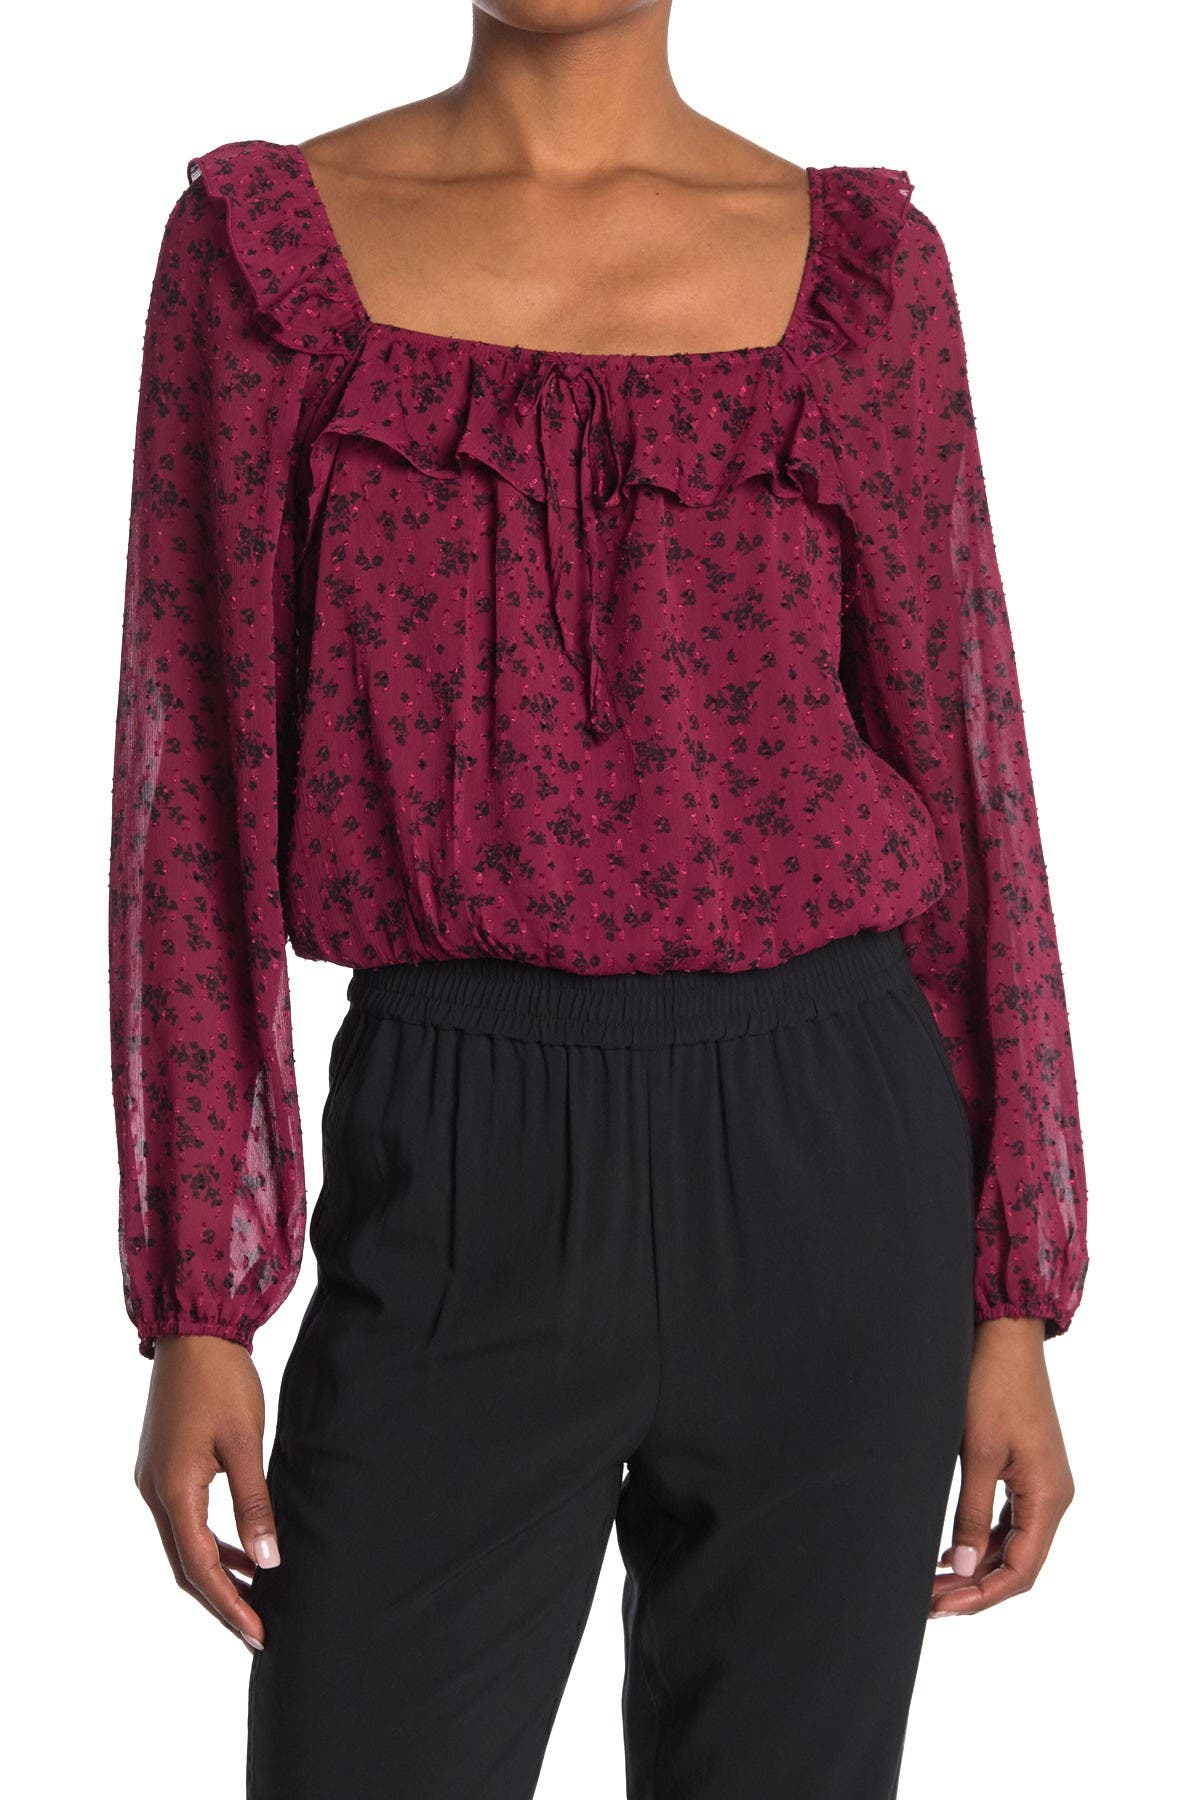 Image of ROW A Printed Ruffle Woven Top